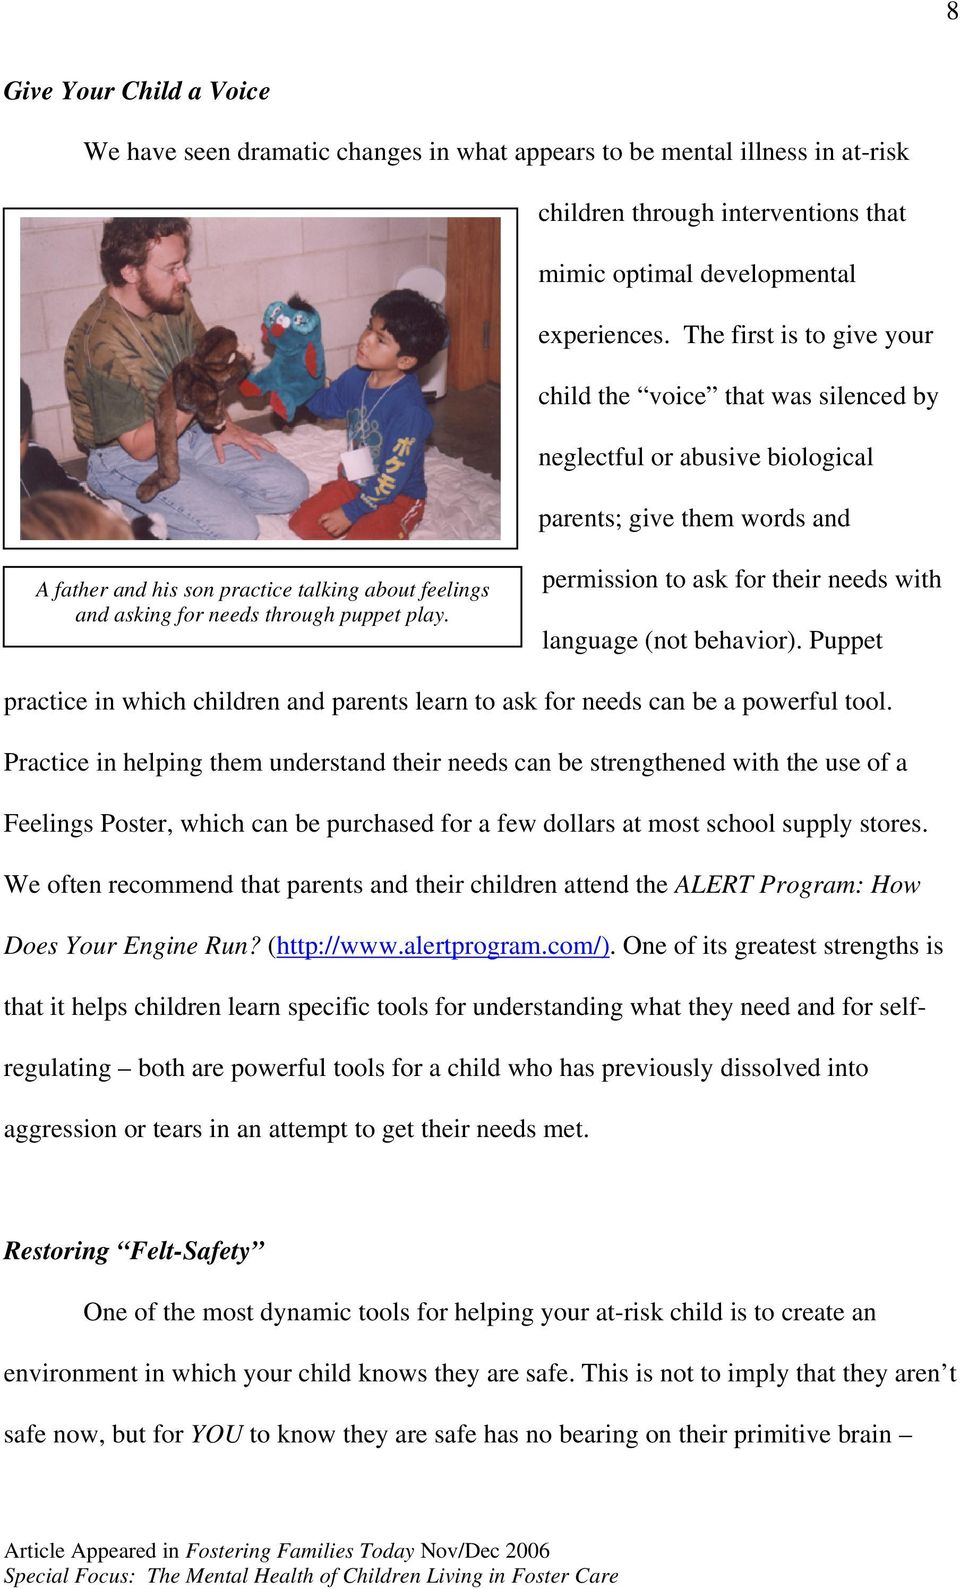 through puppet play. permission to ask for their needs with language (not behavior). Puppet practice in which children and parents learn to ask for needs can be a powerful tool.